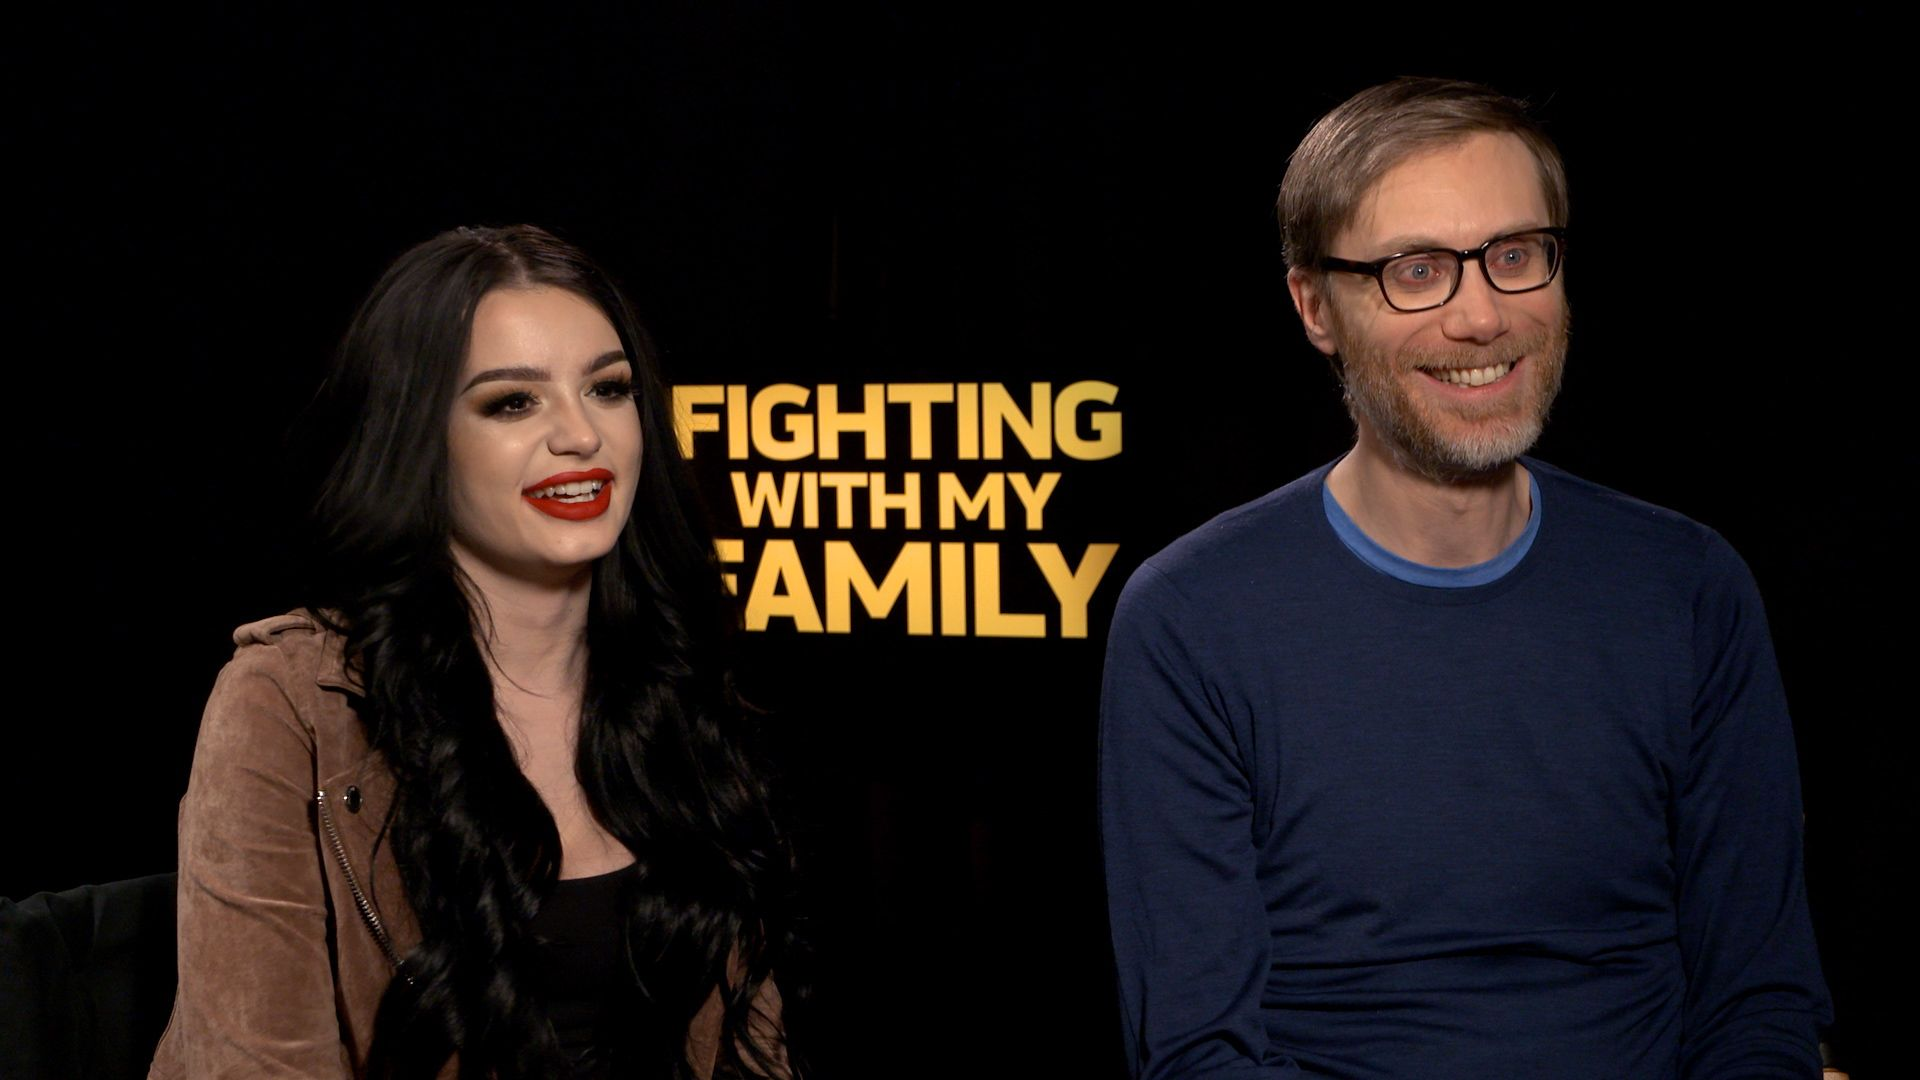 Paige & Stephen Merchant on 'Fighting With My Family' and the Importance of Adding Humor